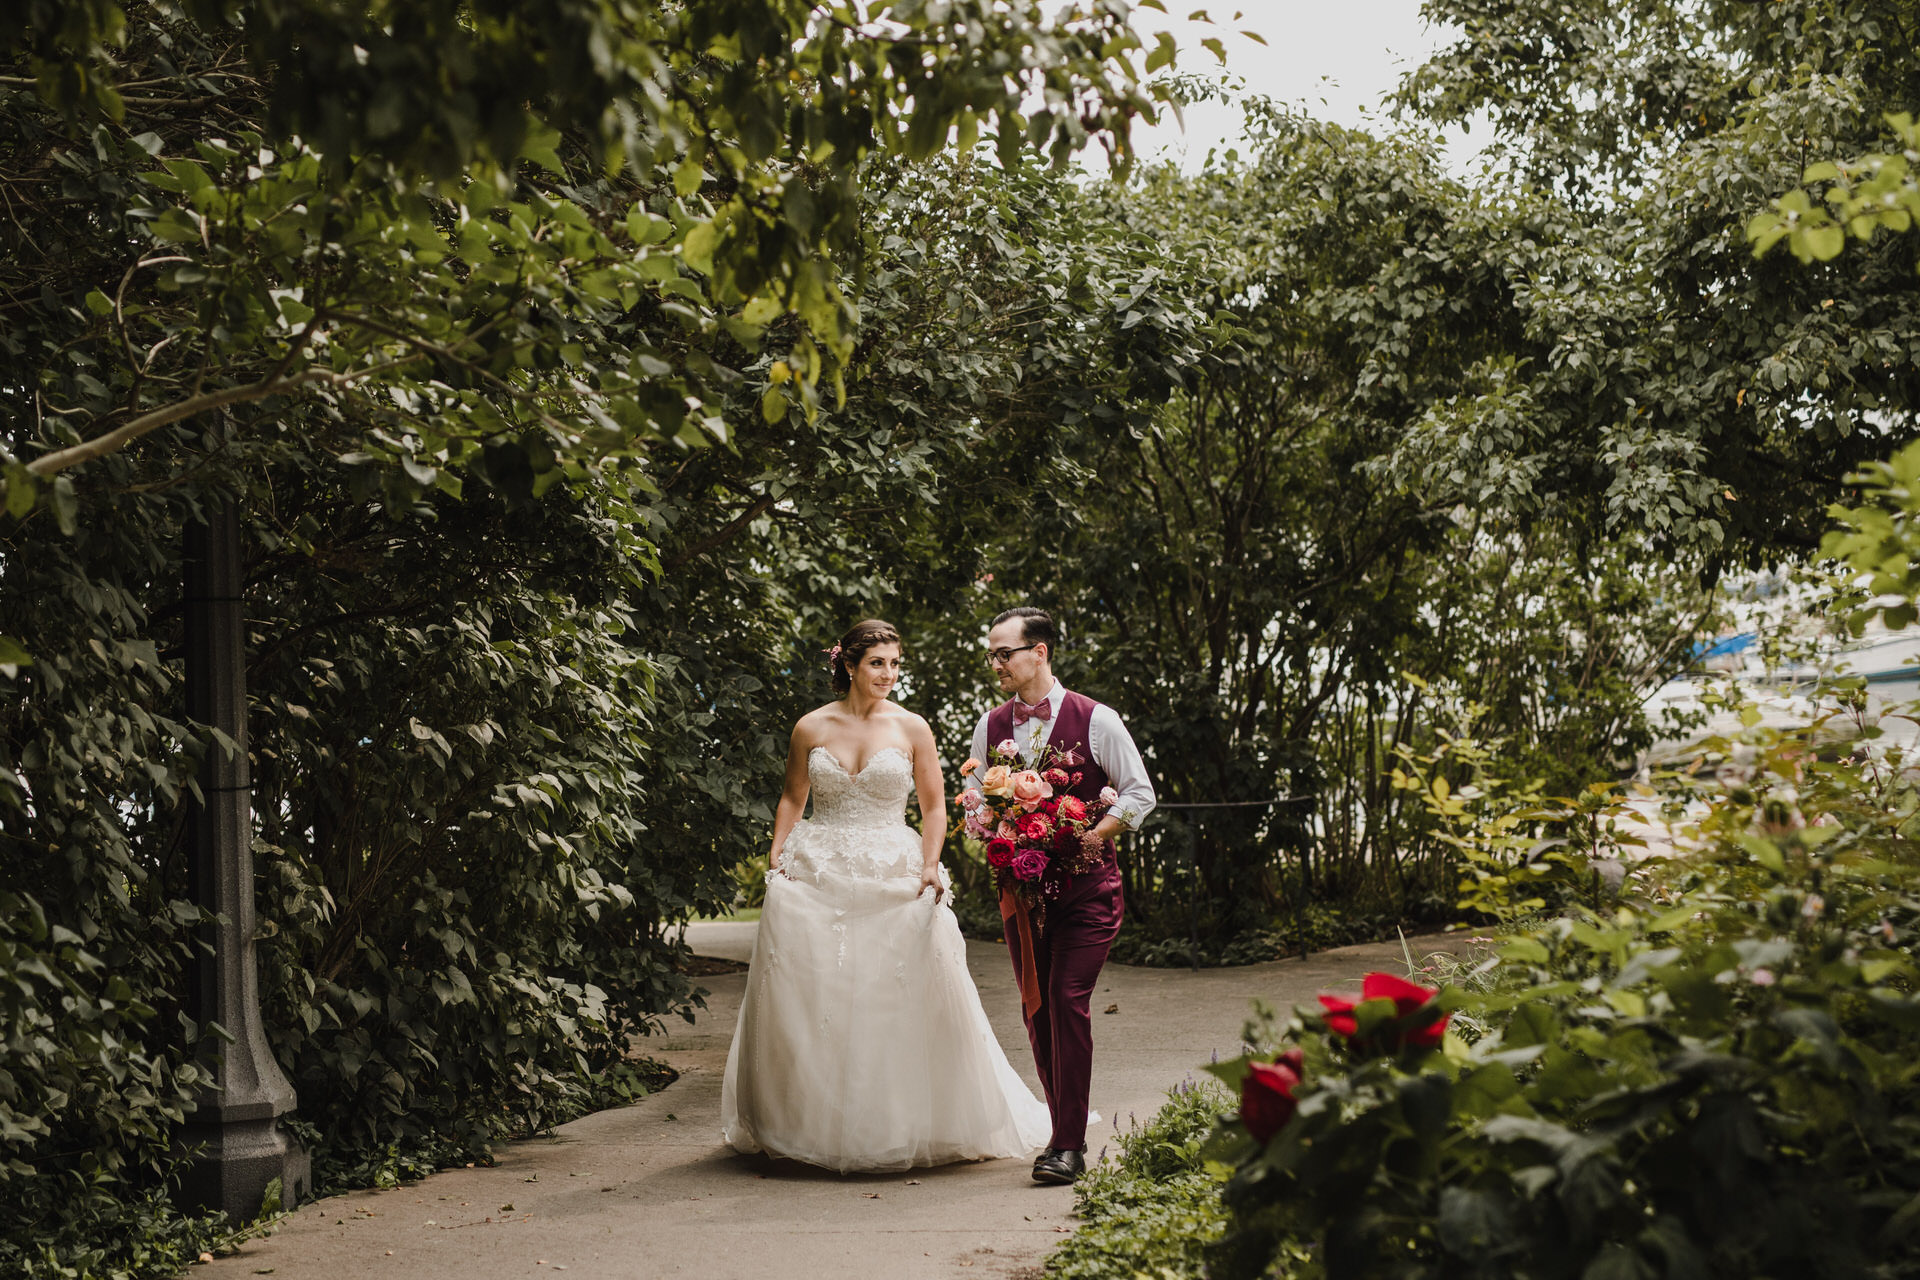 Berkeley Church Wedding - garden stroll